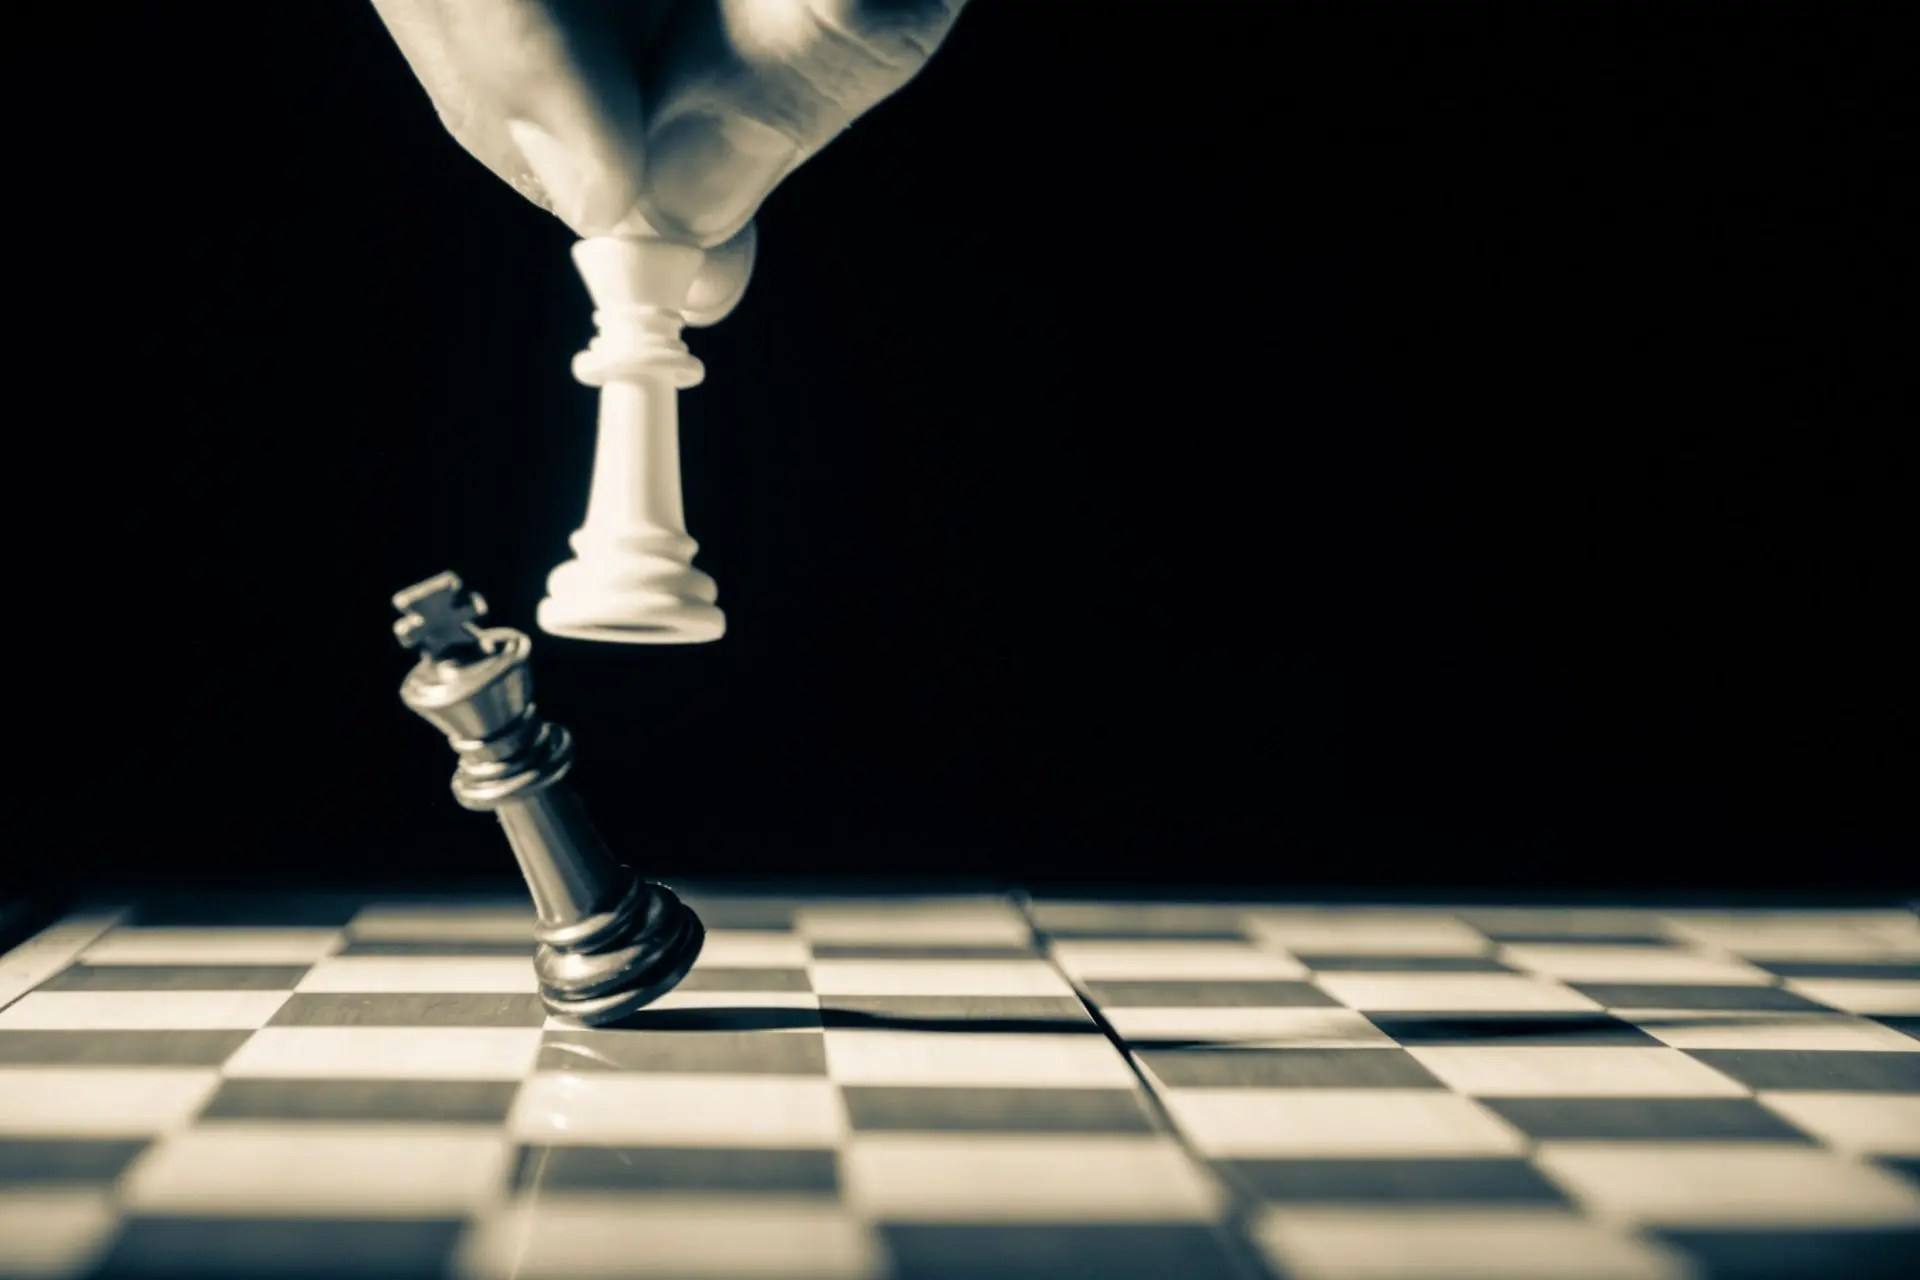 One chess piece knocking over another on an empty chess board